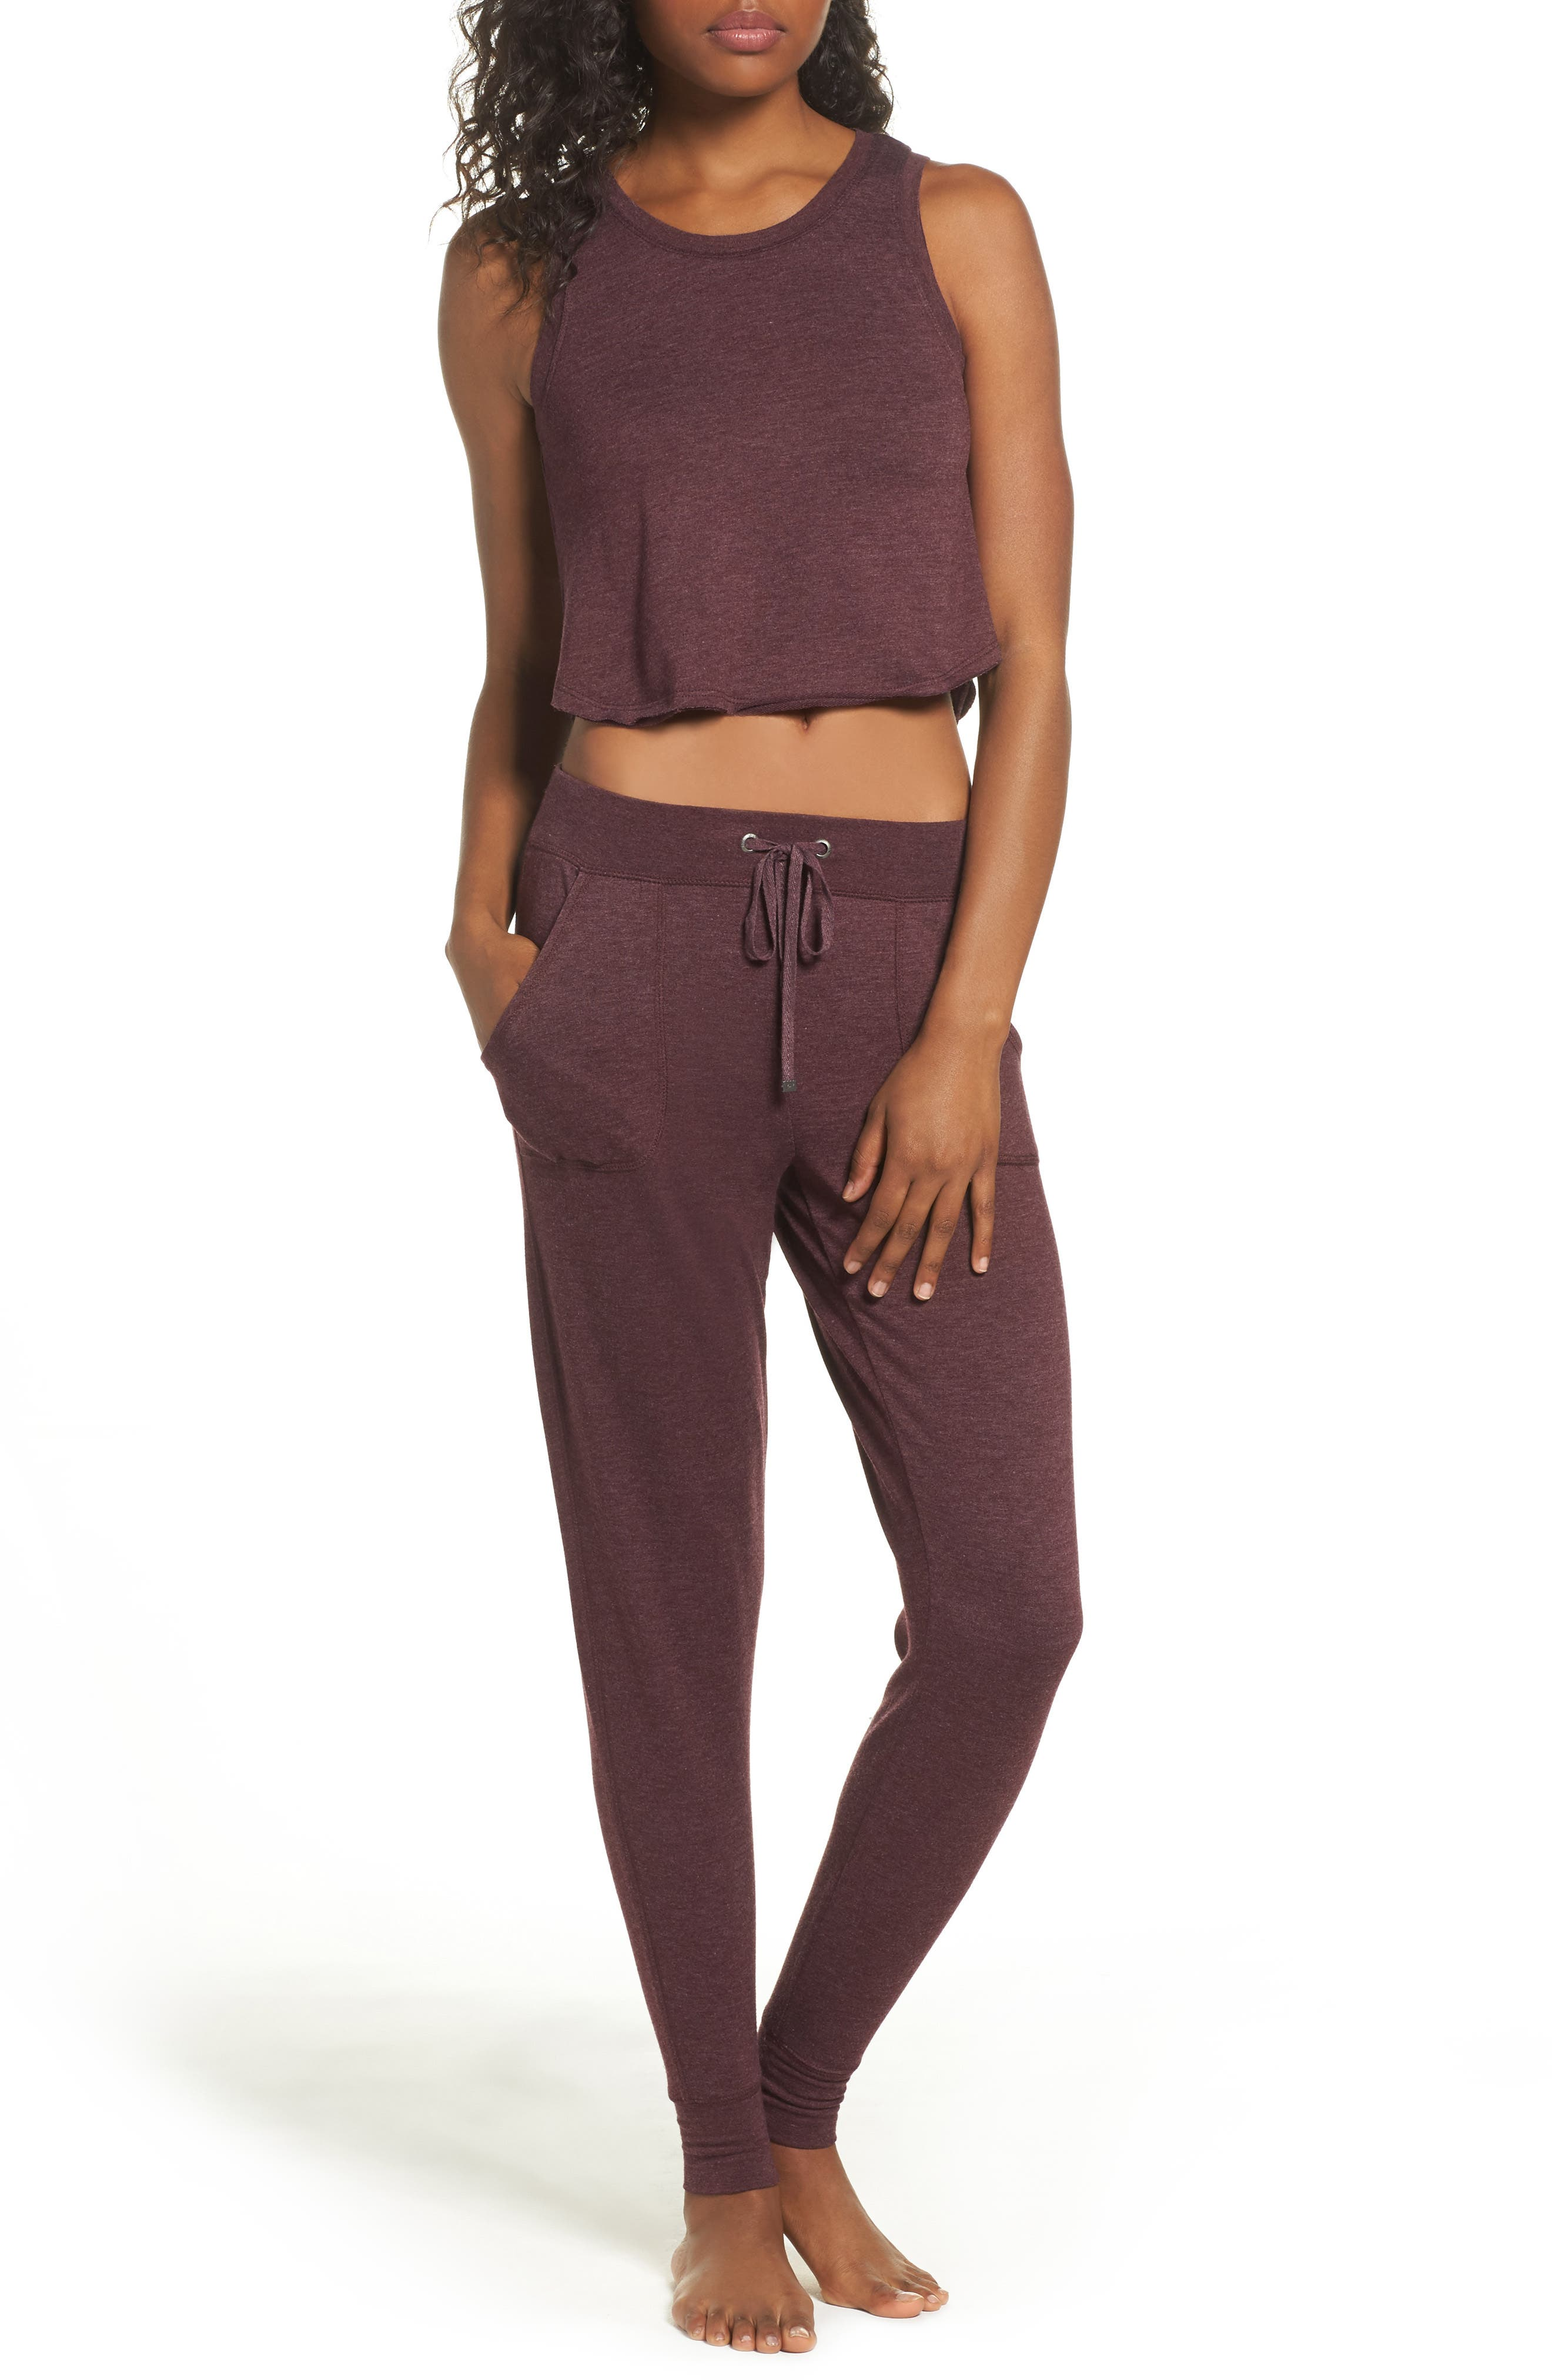 All About It Lounge Pants,                             Alternate thumbnail 41, color,